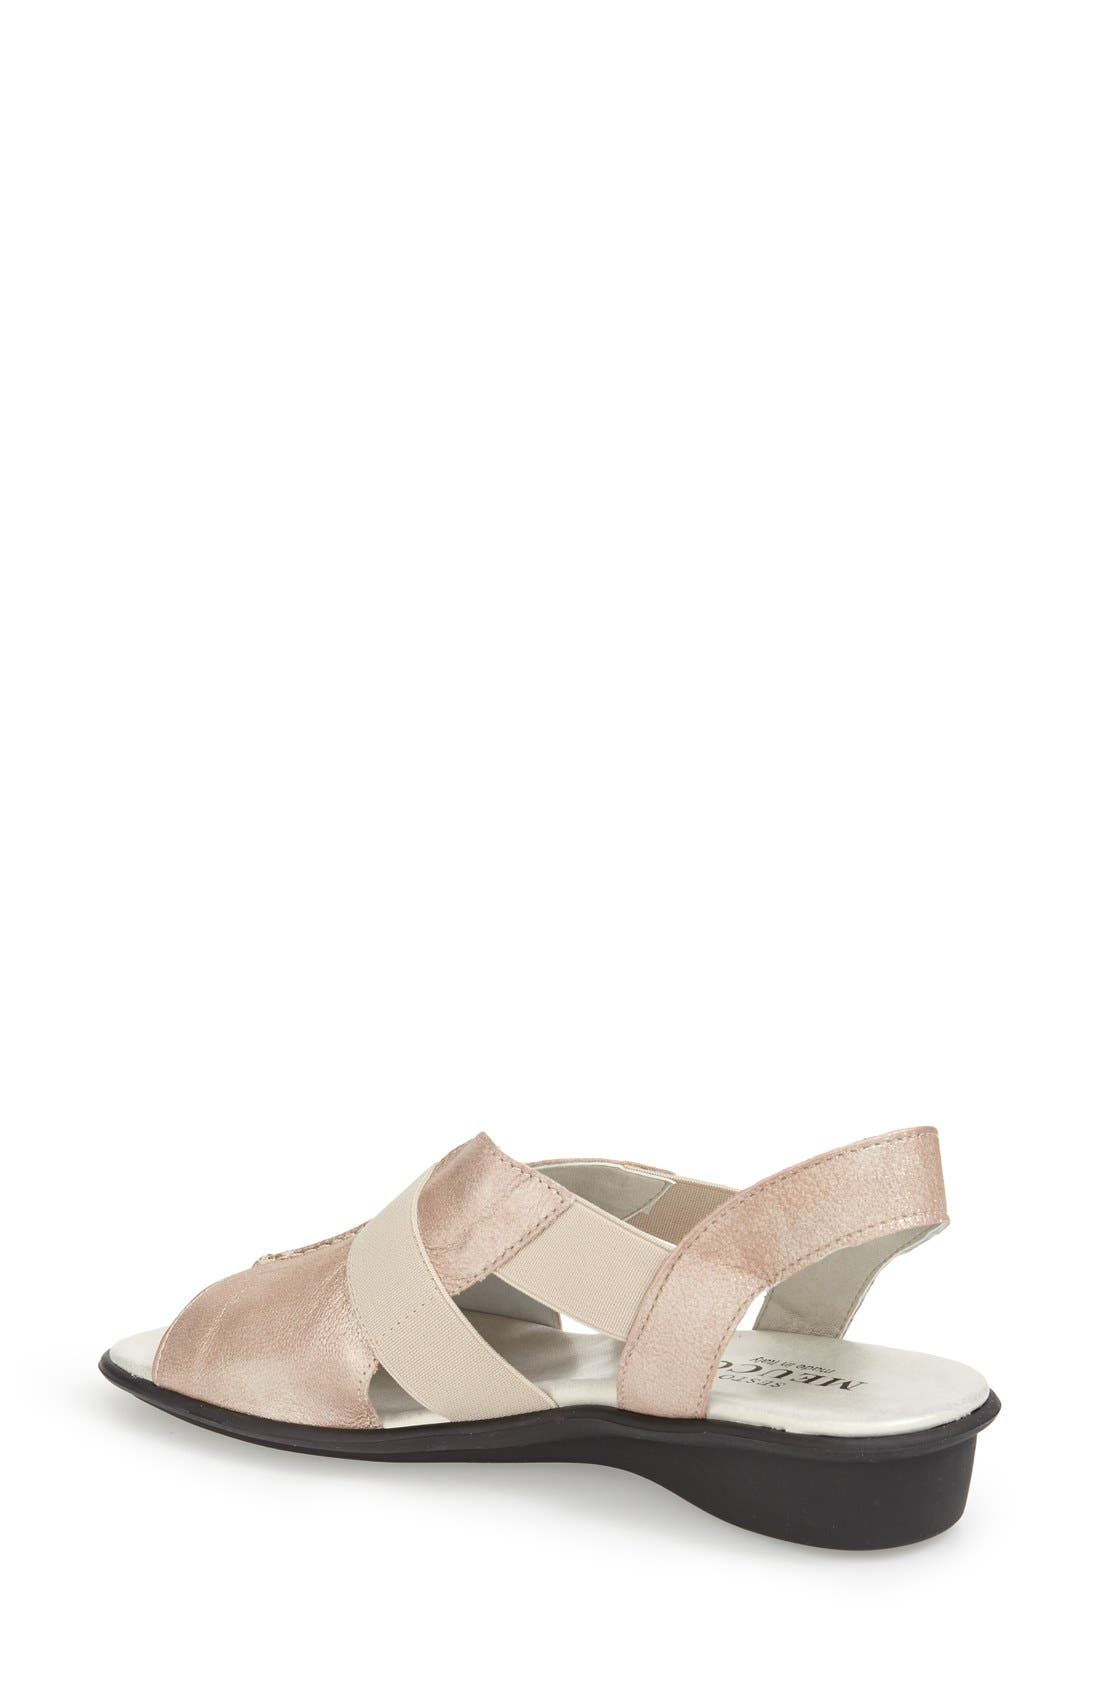 Alternate Image 2  - Sesto Meucci 'Ella' Wedge Sandal (Women)